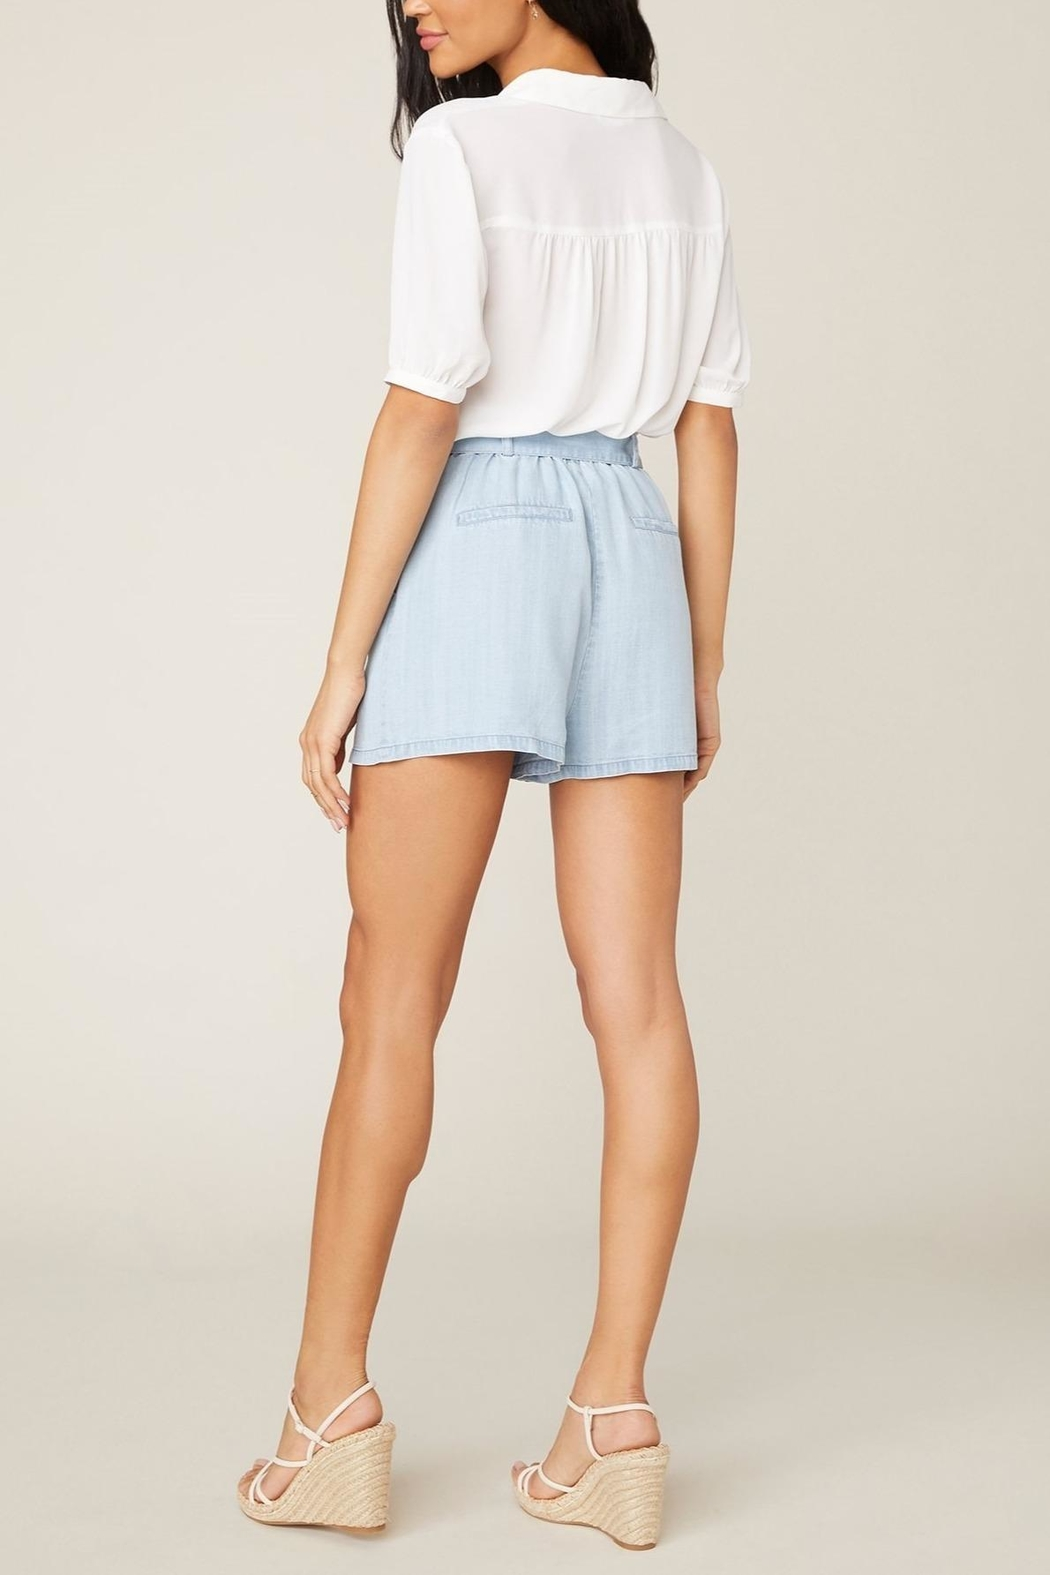 BB Dakota Belt-It-Up Shorts - Back Cropped Image